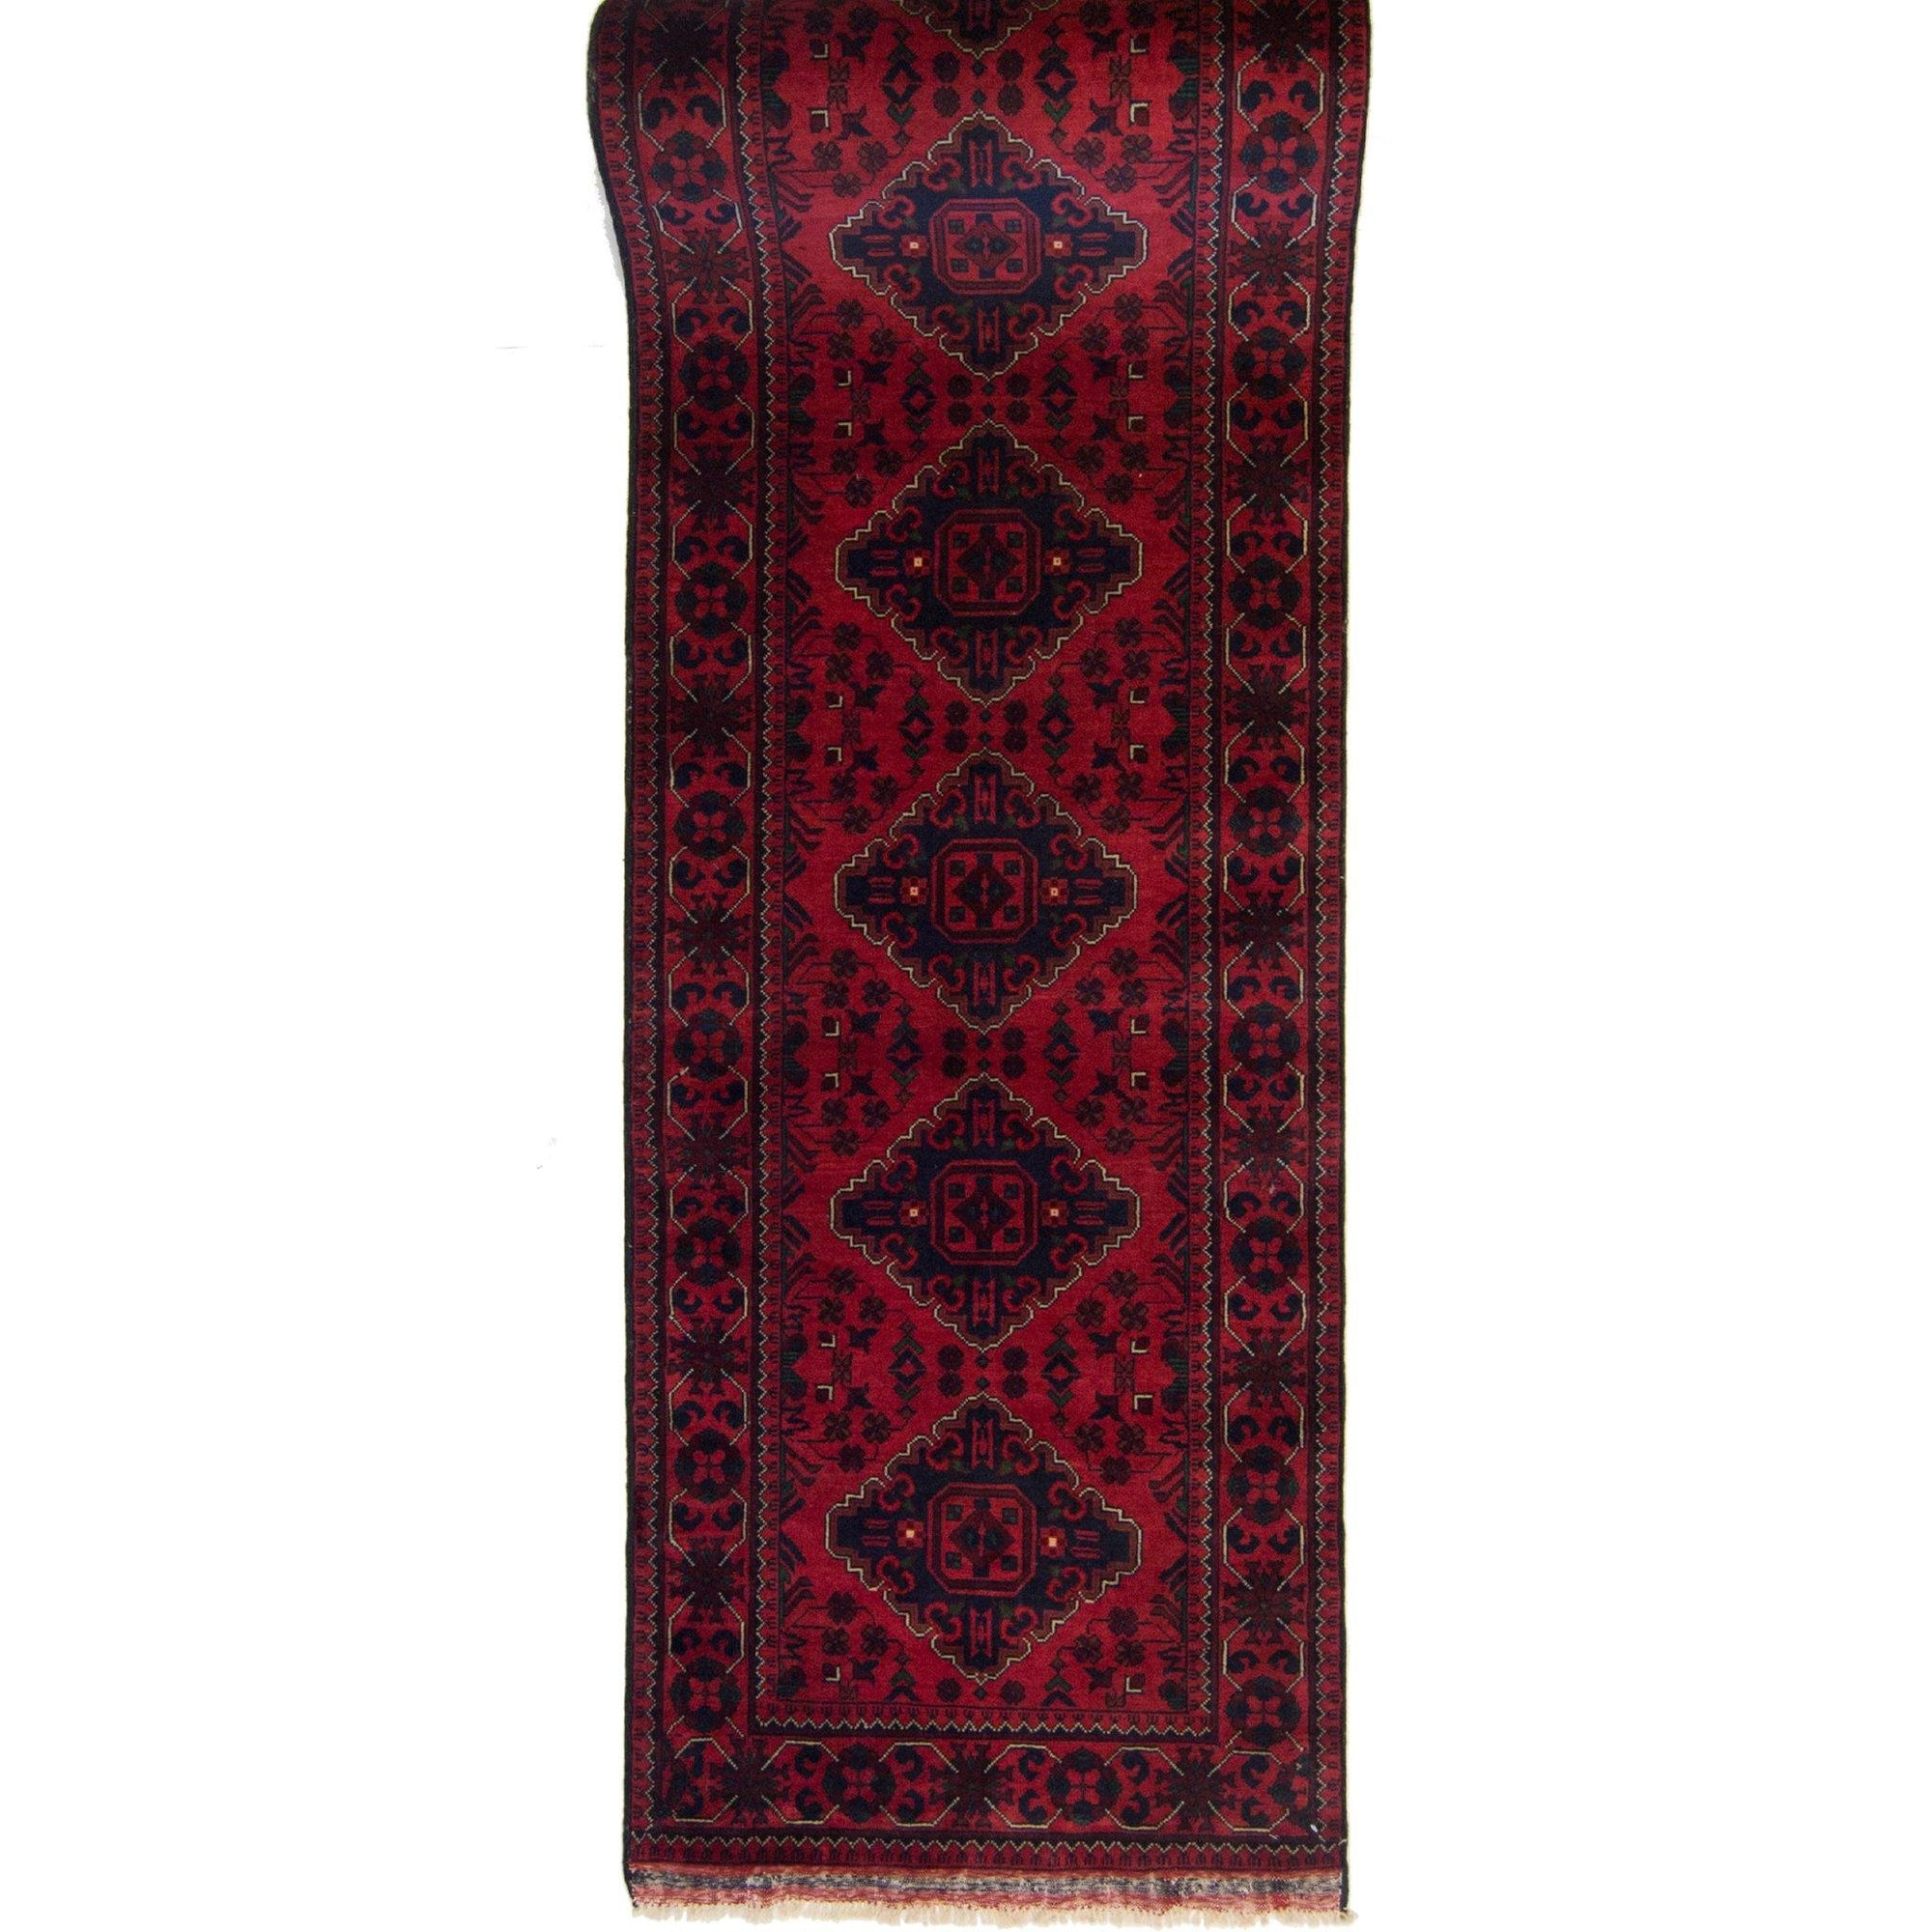 Hand-knotted Tribal 100% Wool Khal Mohammadi Runner 78cm x 780cm Persian-Rug | House-of-Haghi | NewMarket | Auckland | NZ | Handmade Persian Rugs | Hand Knotted Persian Rugs